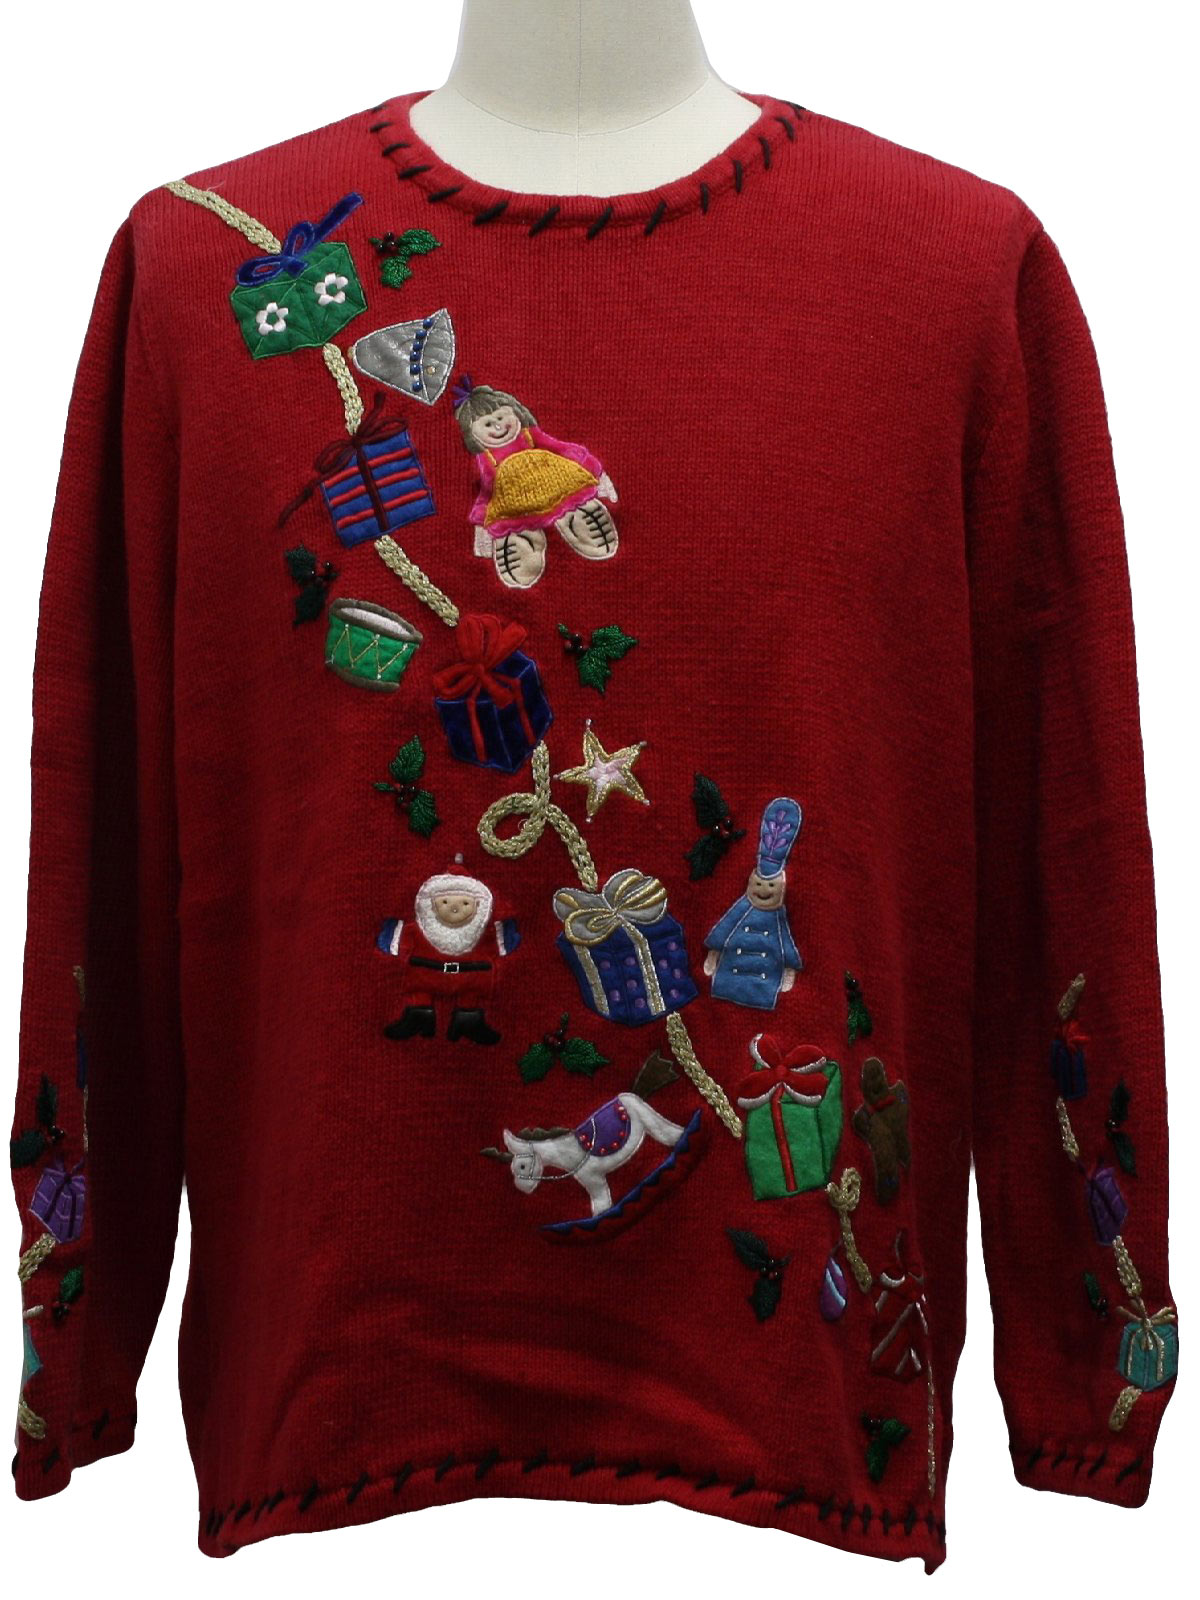 Ugly christmas sweater missing label unisex red for Over the top ugly christmas sweaters